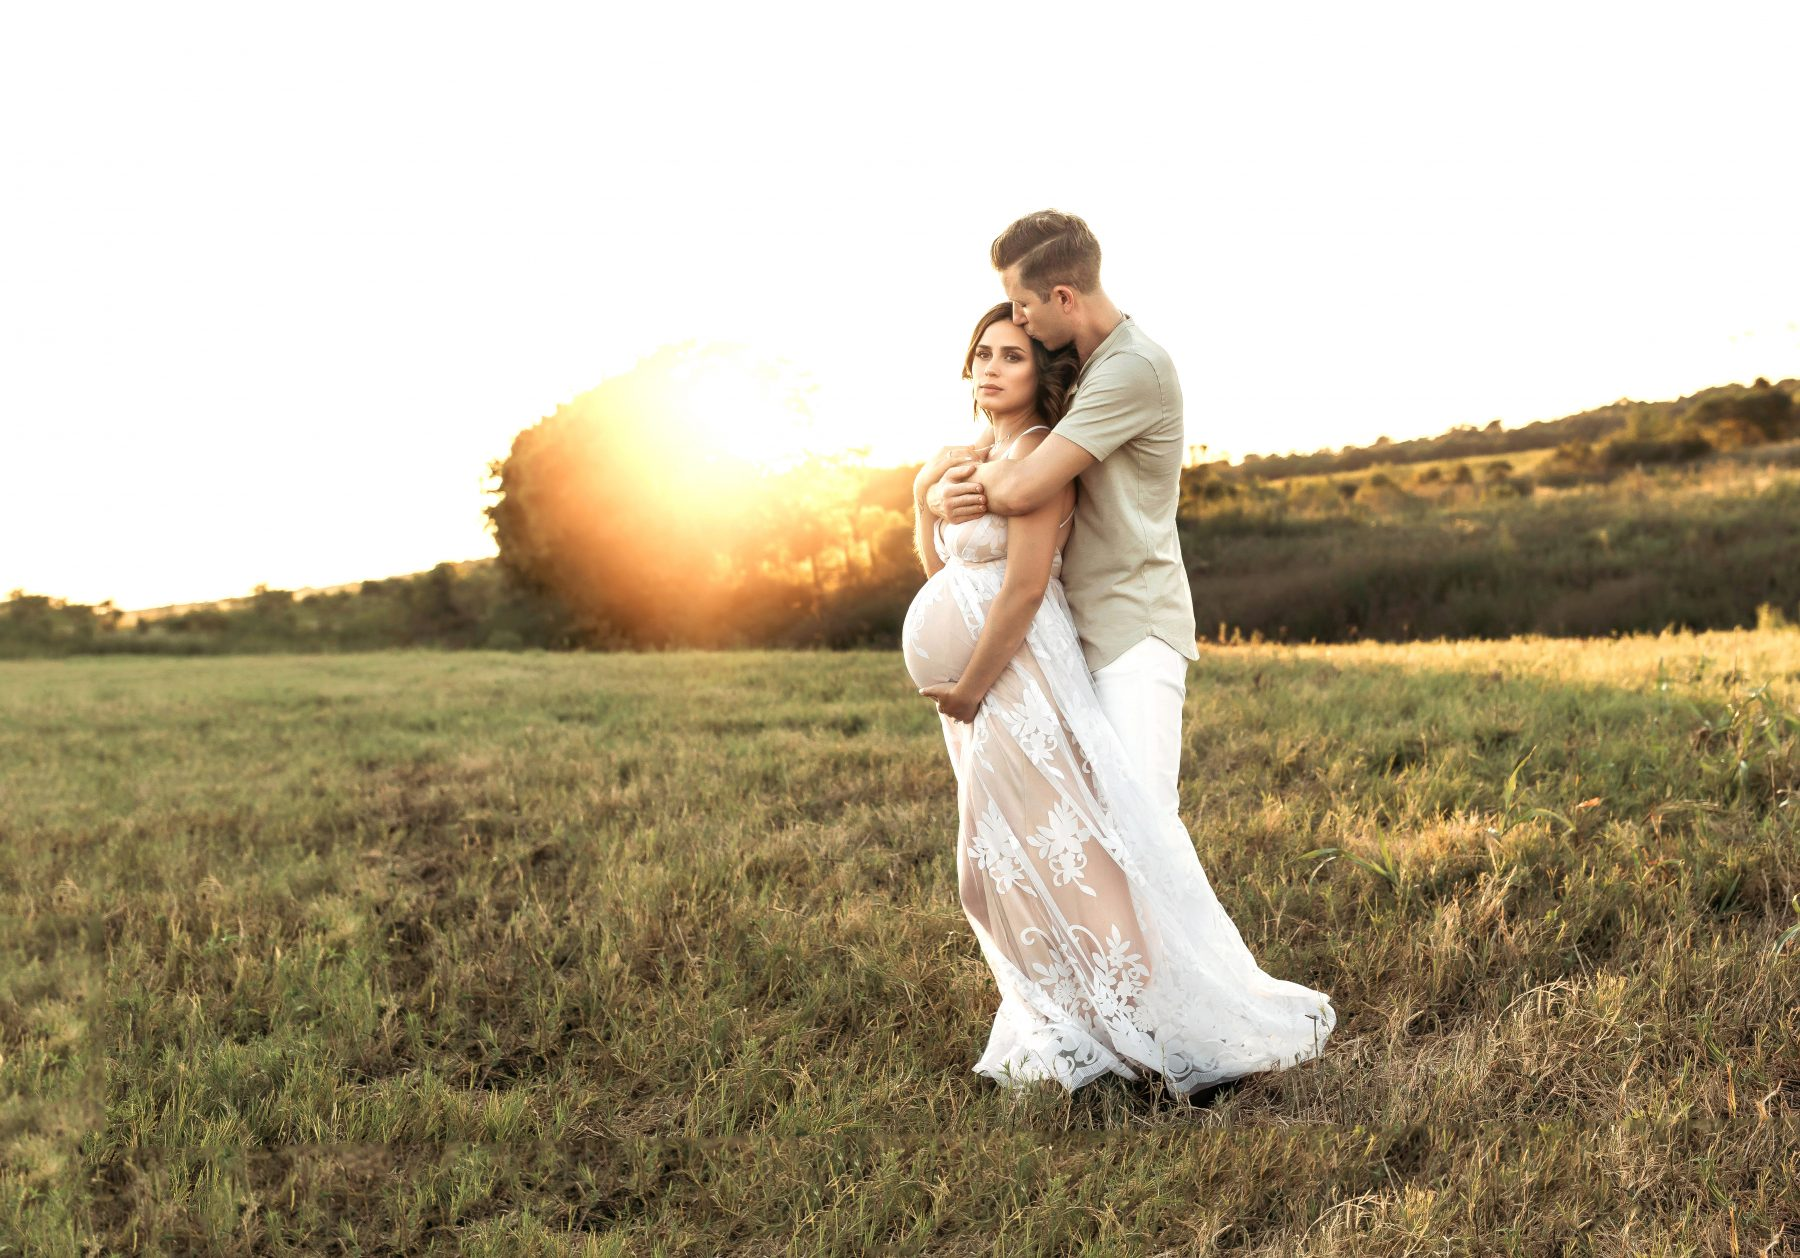 Houston lifestyle blogger Elly Brown shares her outdoor couples maternity photos